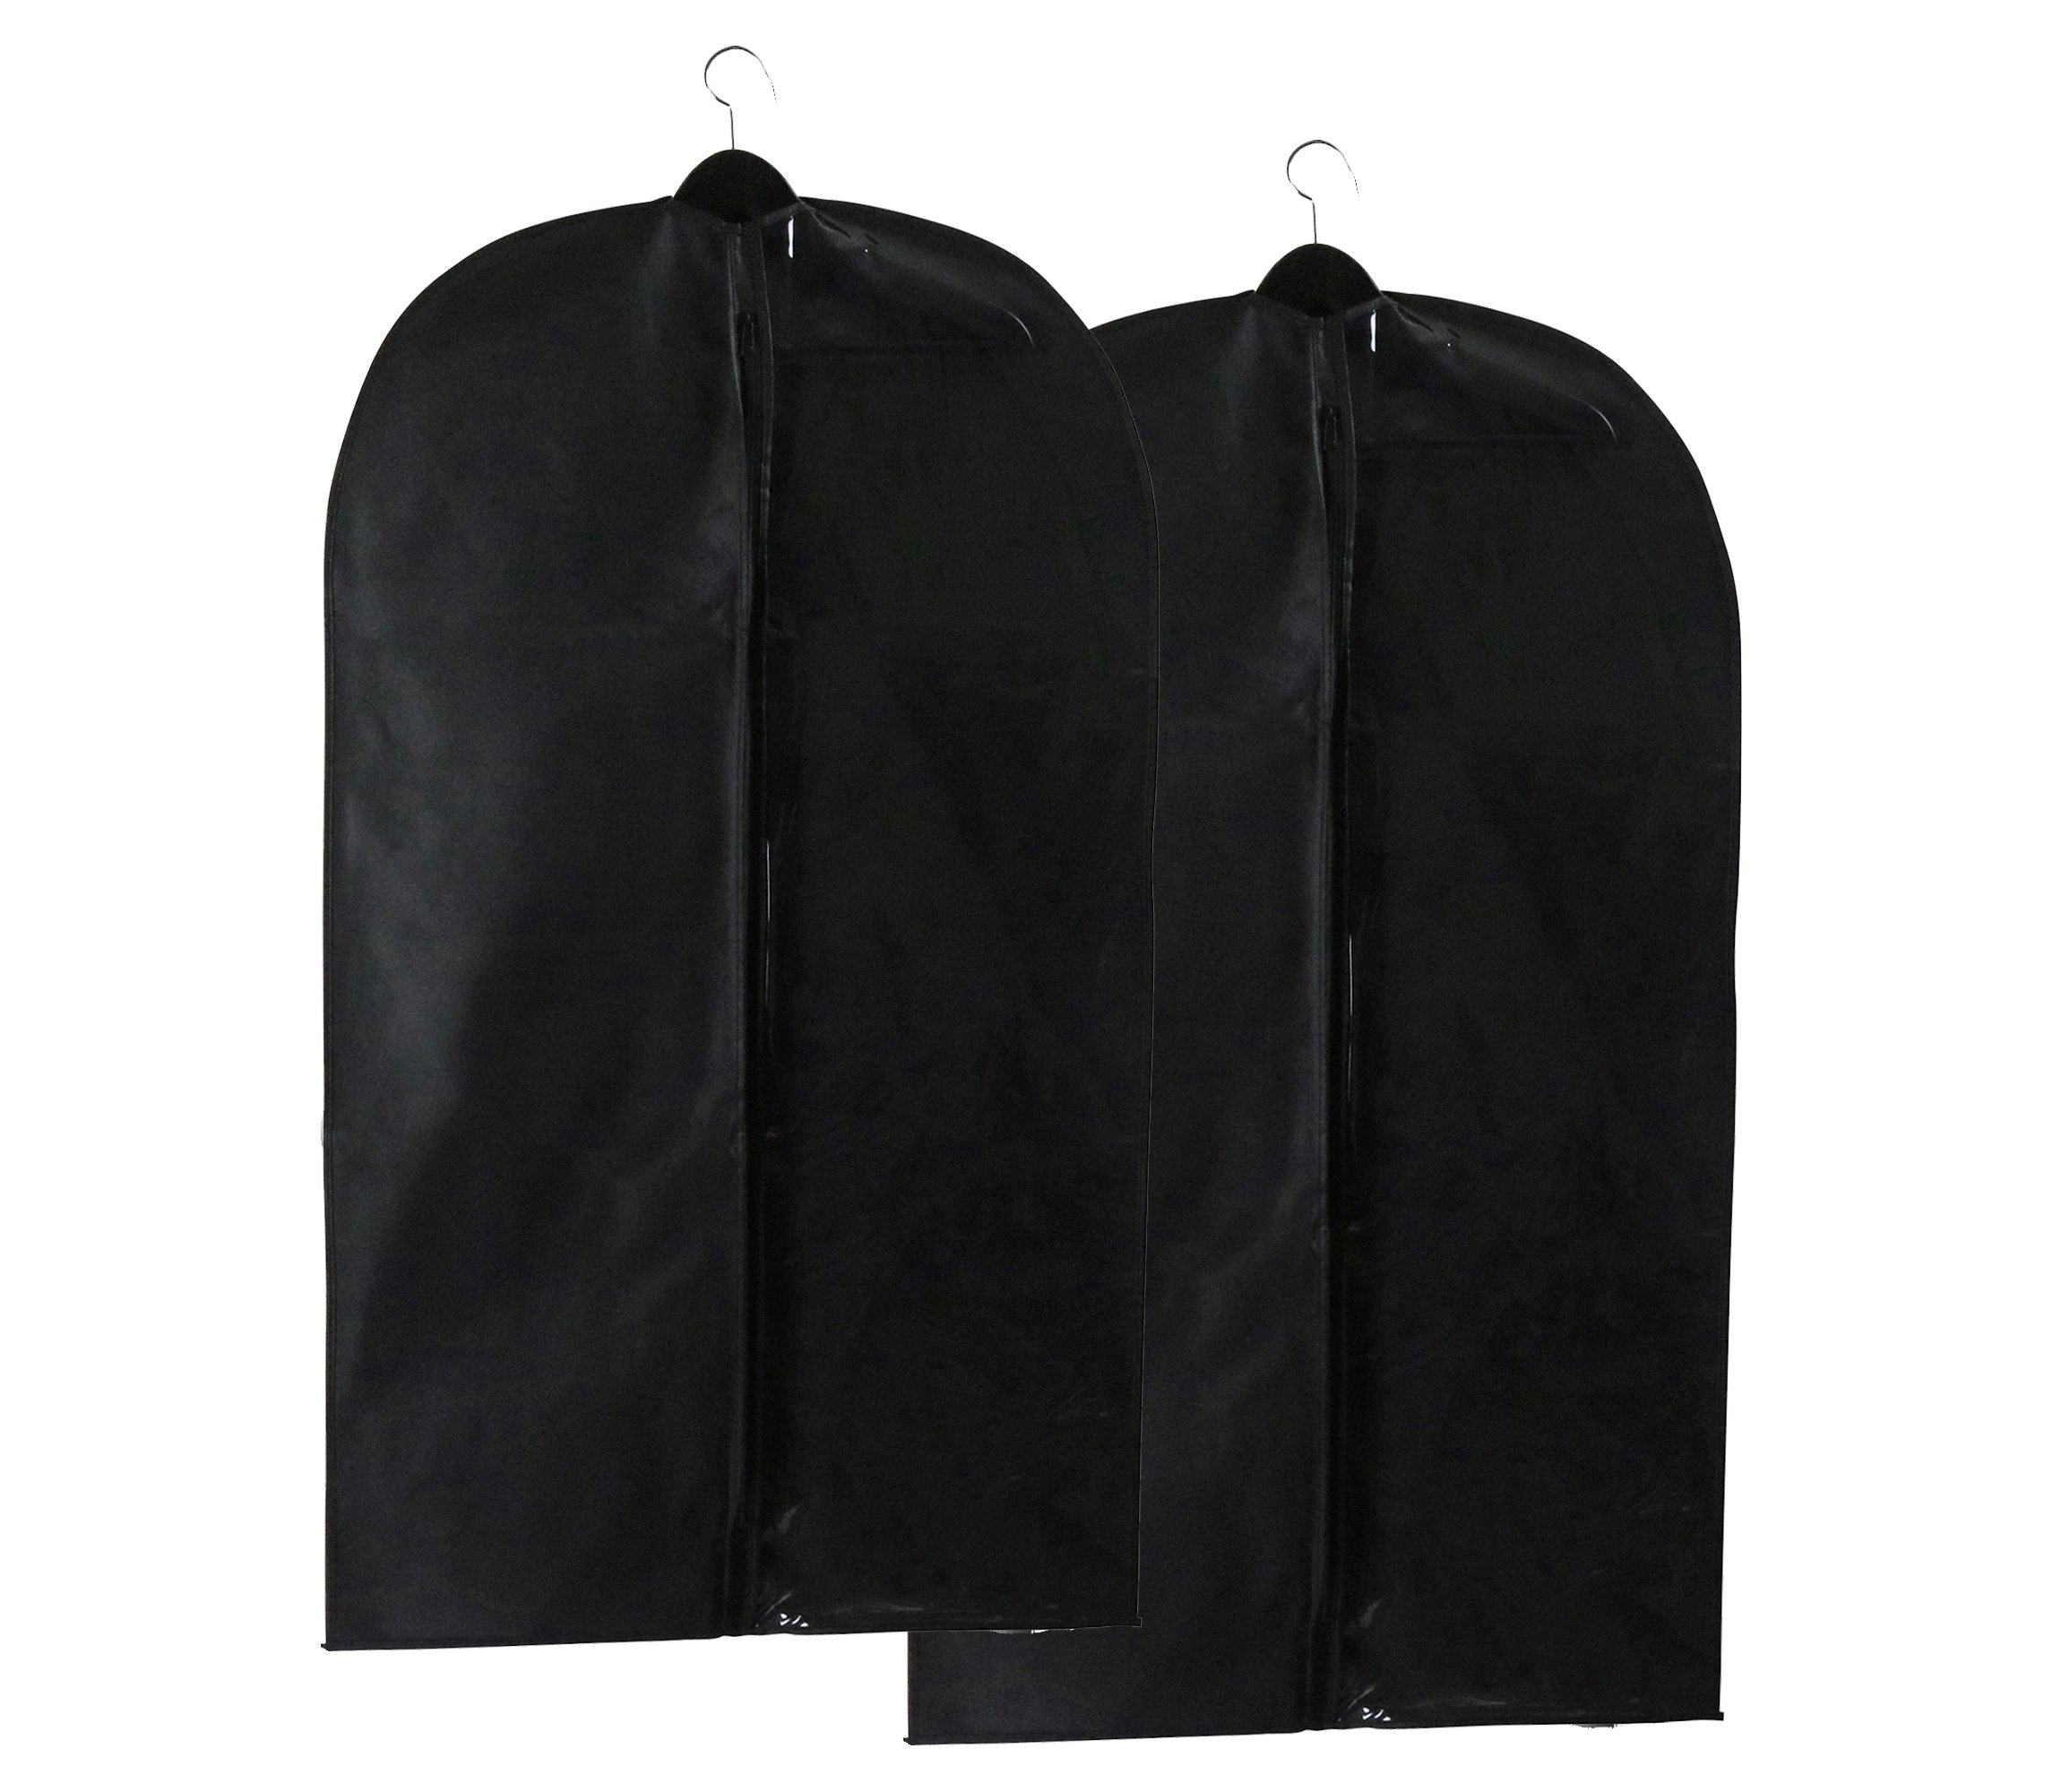 Caskyan 42'' Garment Bags, Breathable Black Non-Woven Fabric + Clear PVC for Dresses, Coats, Suits, Storage or Travel- 2 Pcs by CASKYAN (Image #7)